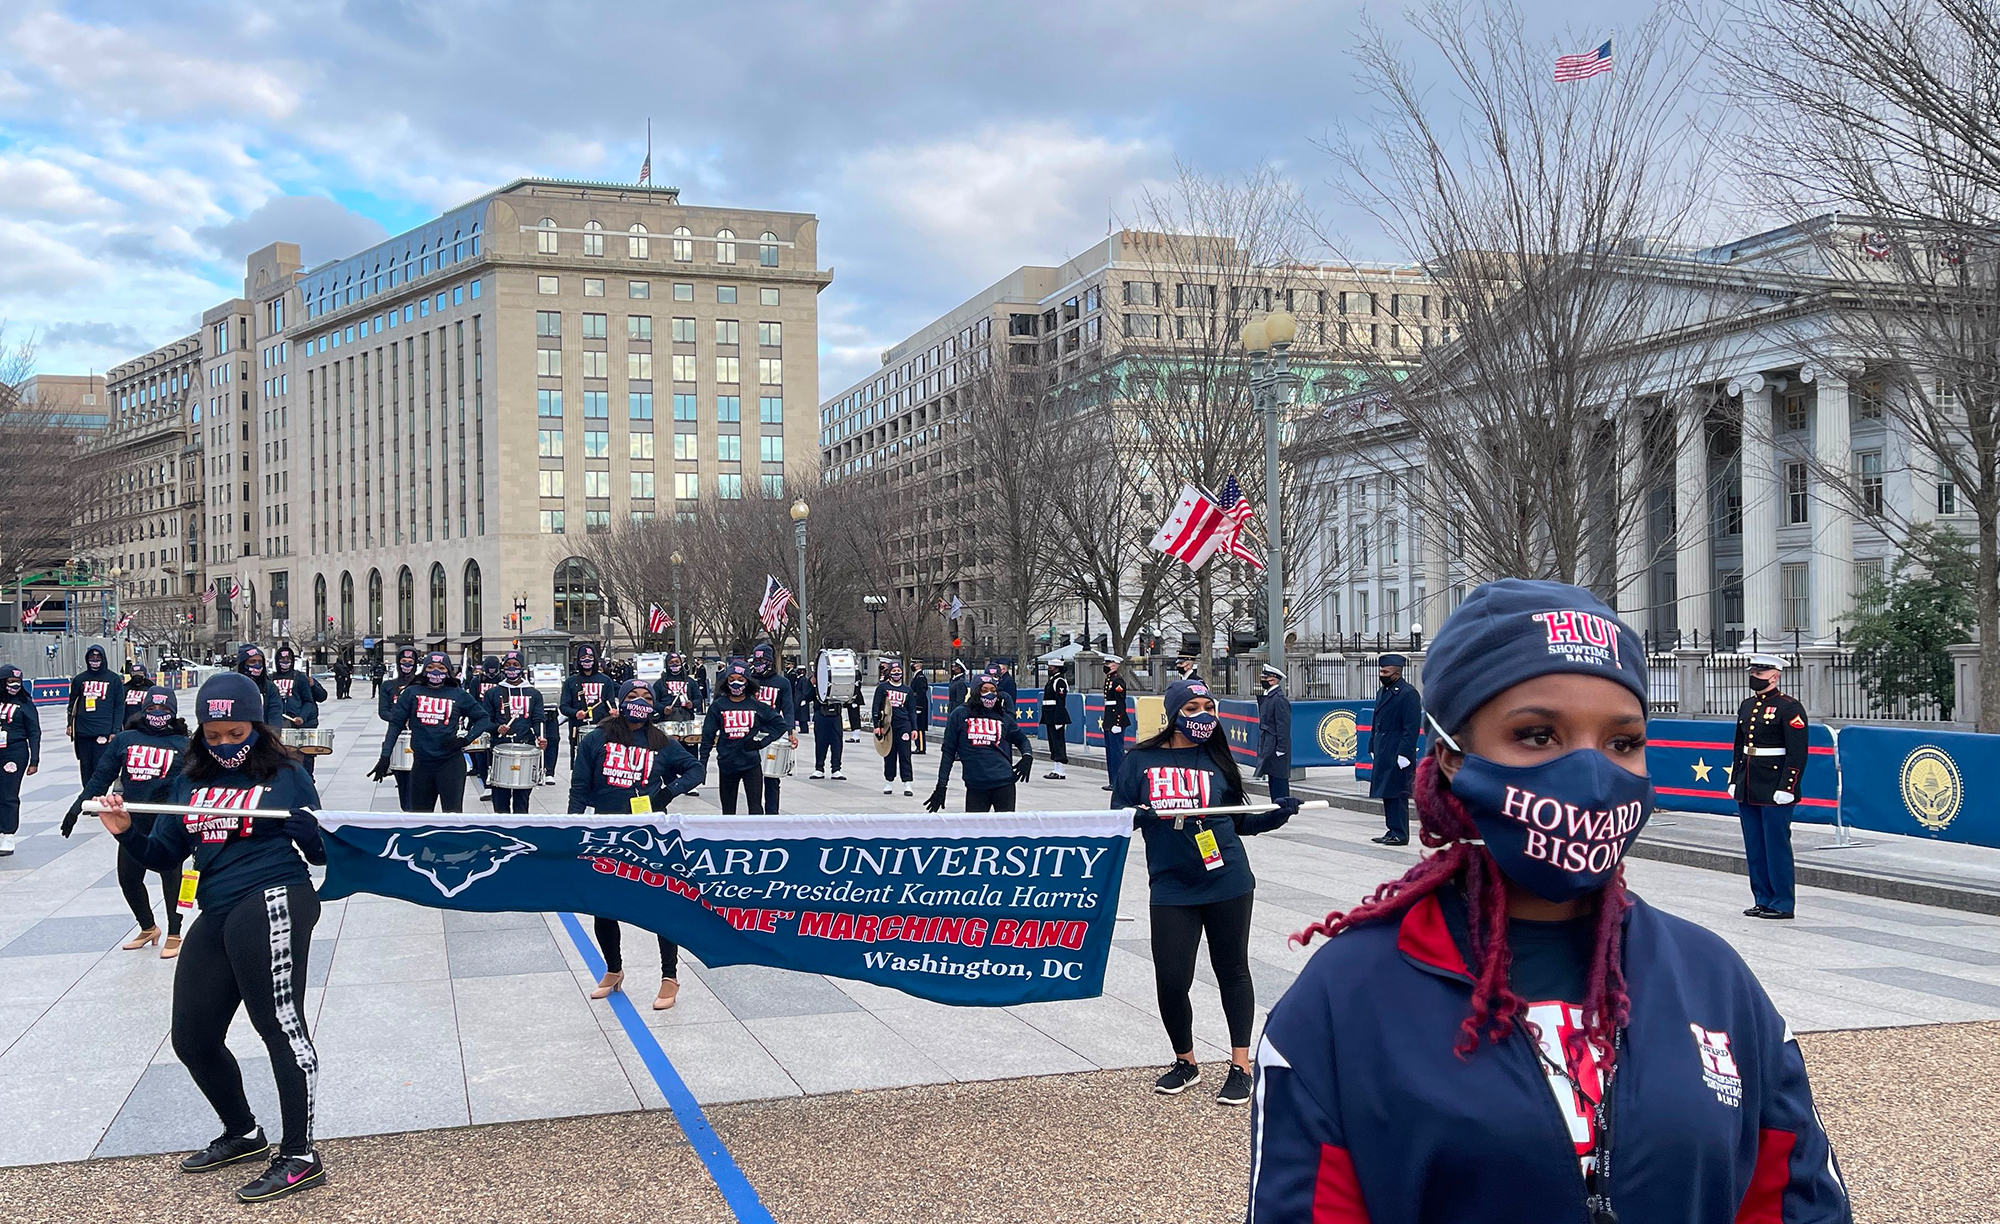 The Howard University marching band escorted Vice President Kamala Harris to the White House